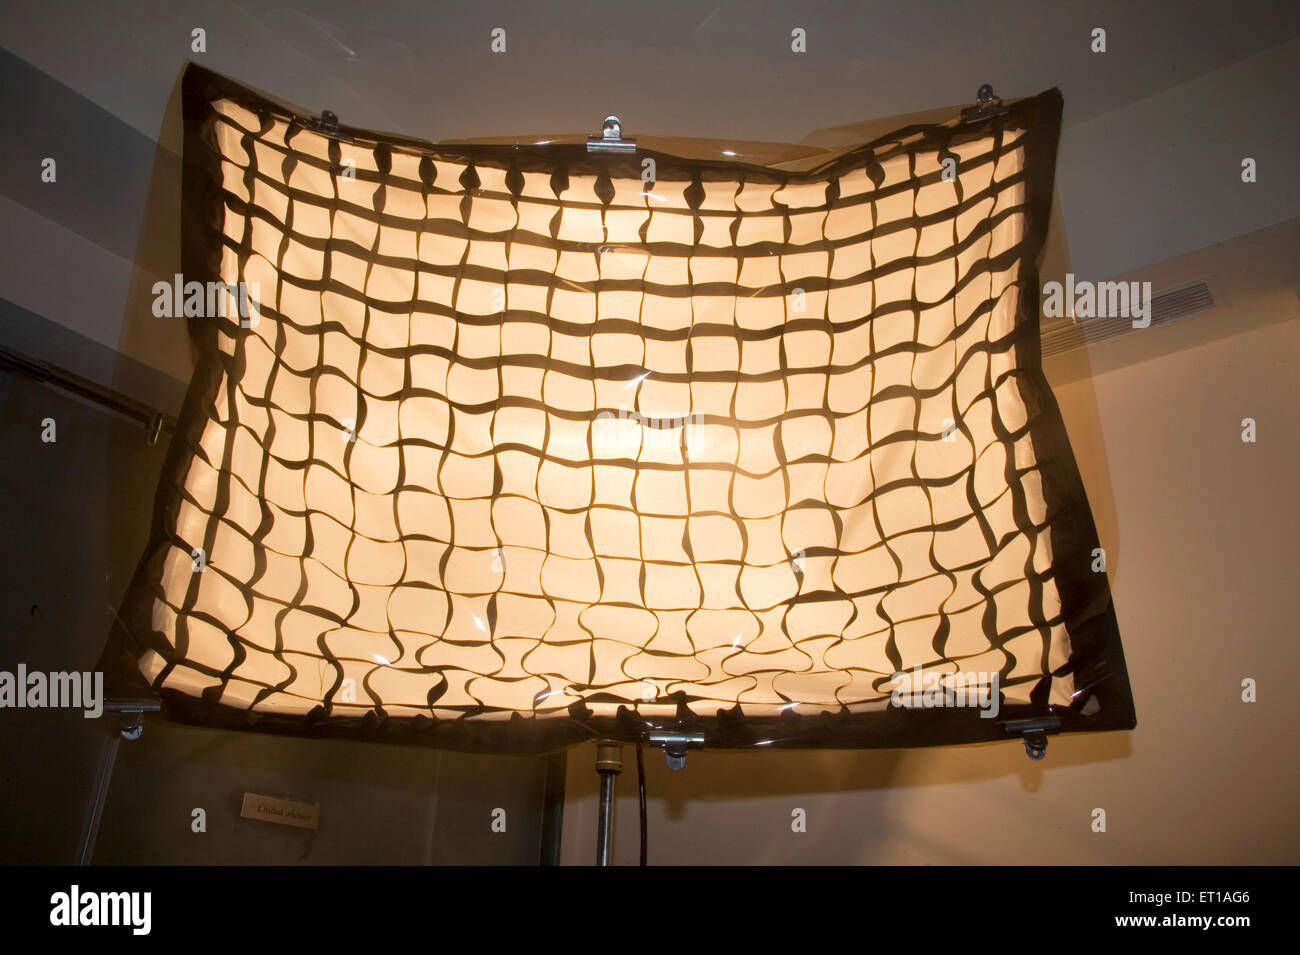 Artificial professional cine soft box light covered black squares effect Photography ; Palolem beach ; Goa ; India - Stock Image